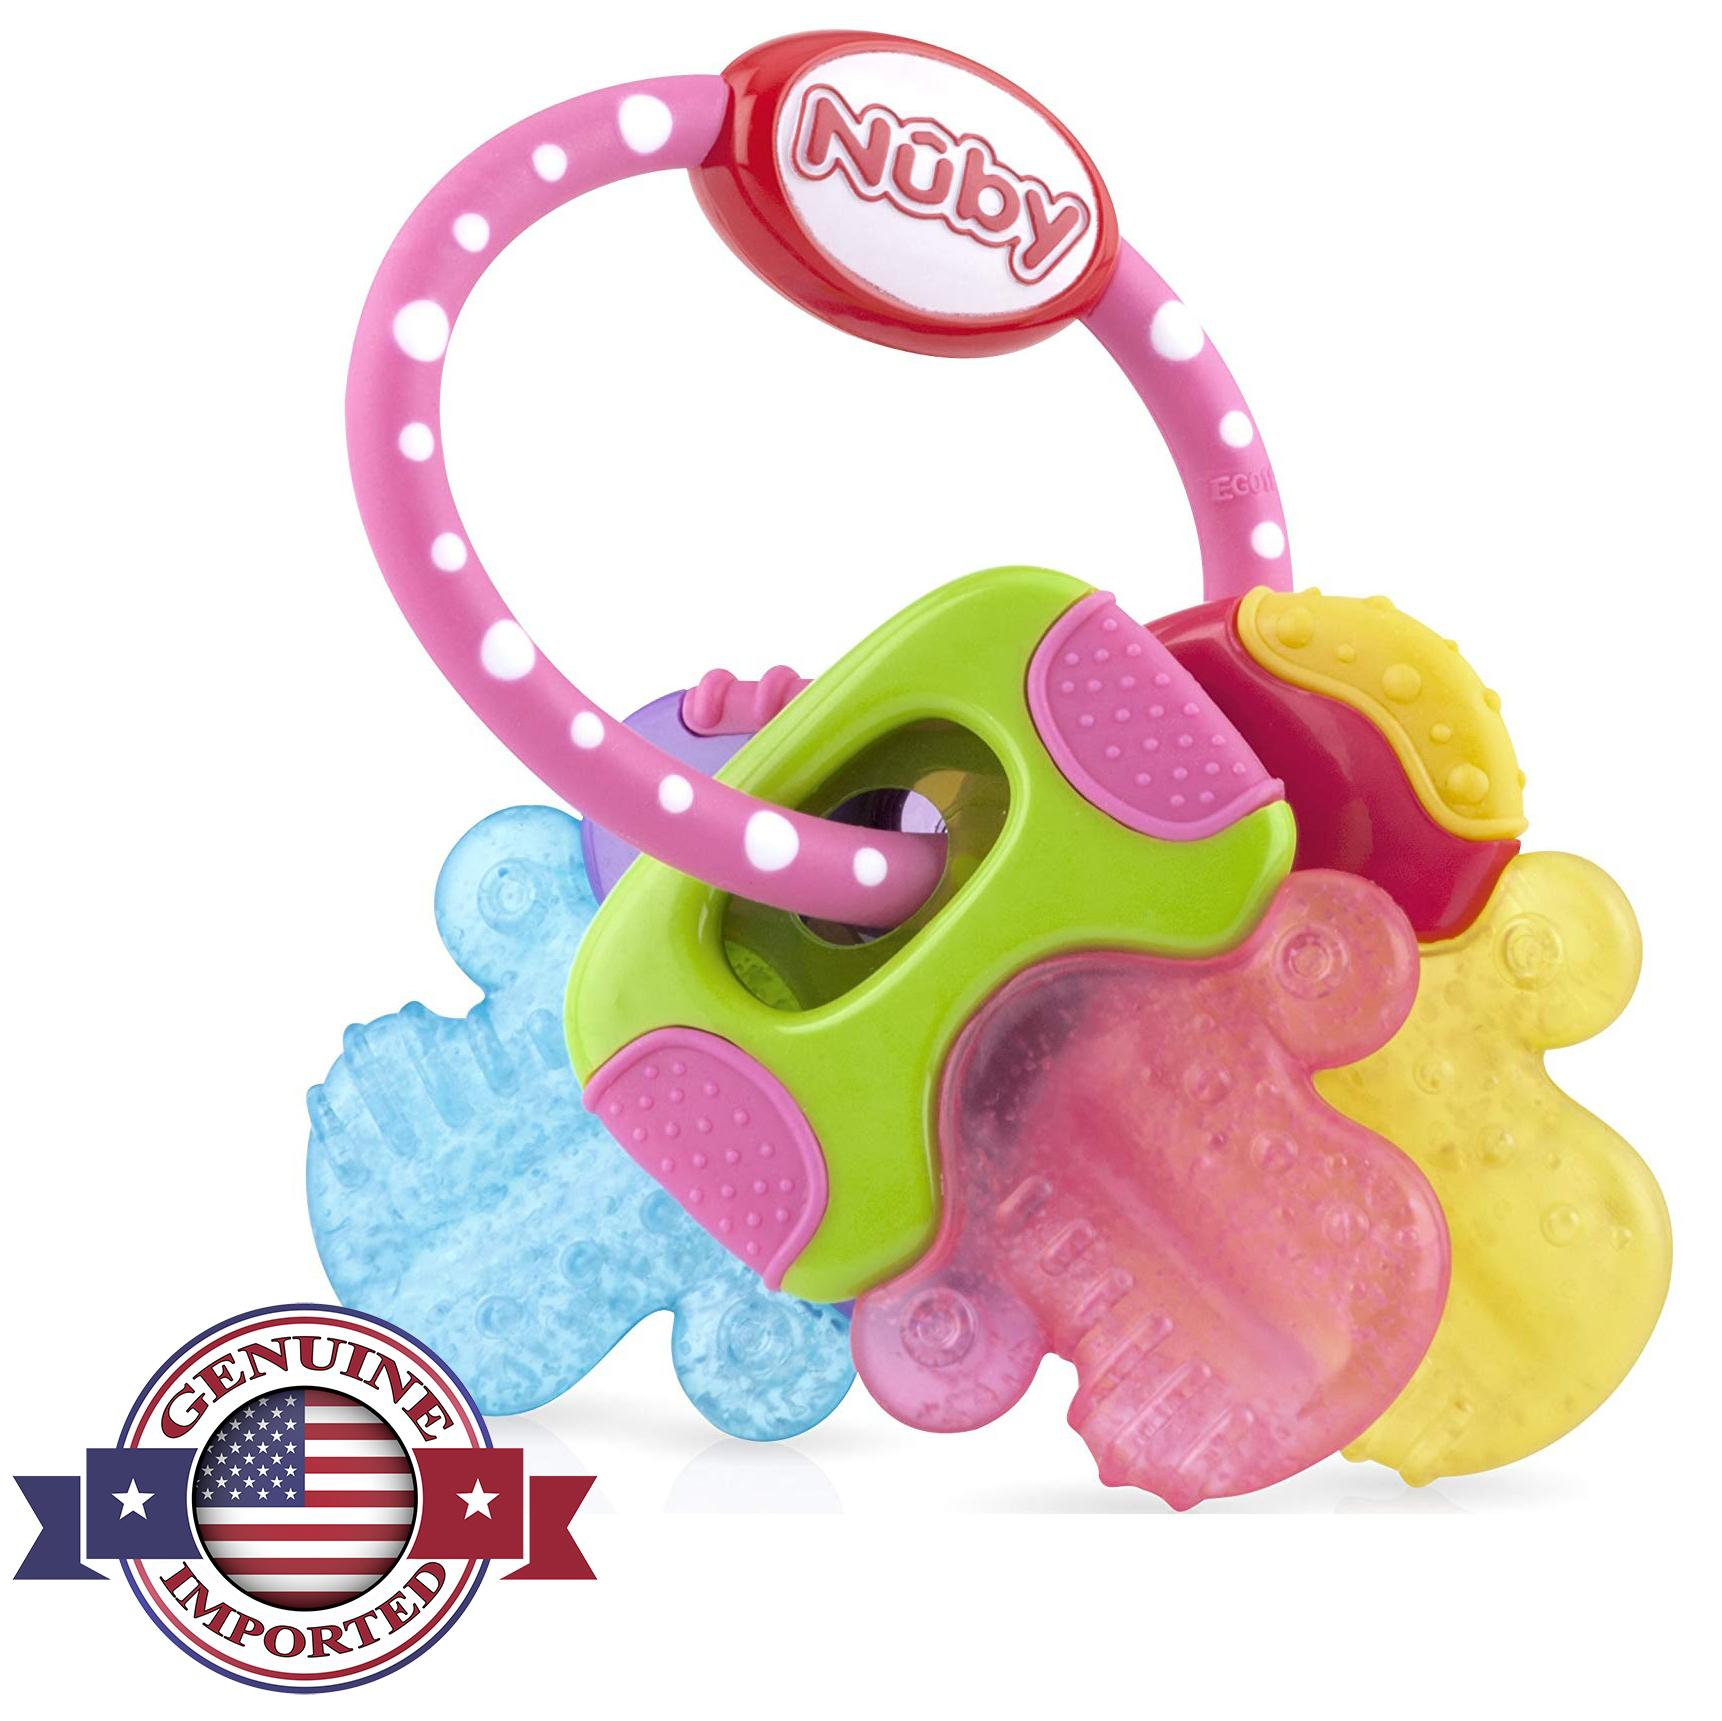 Nuby Ice Gel Baby Teether - Baby Teething Toy for Infants 9226572bd8